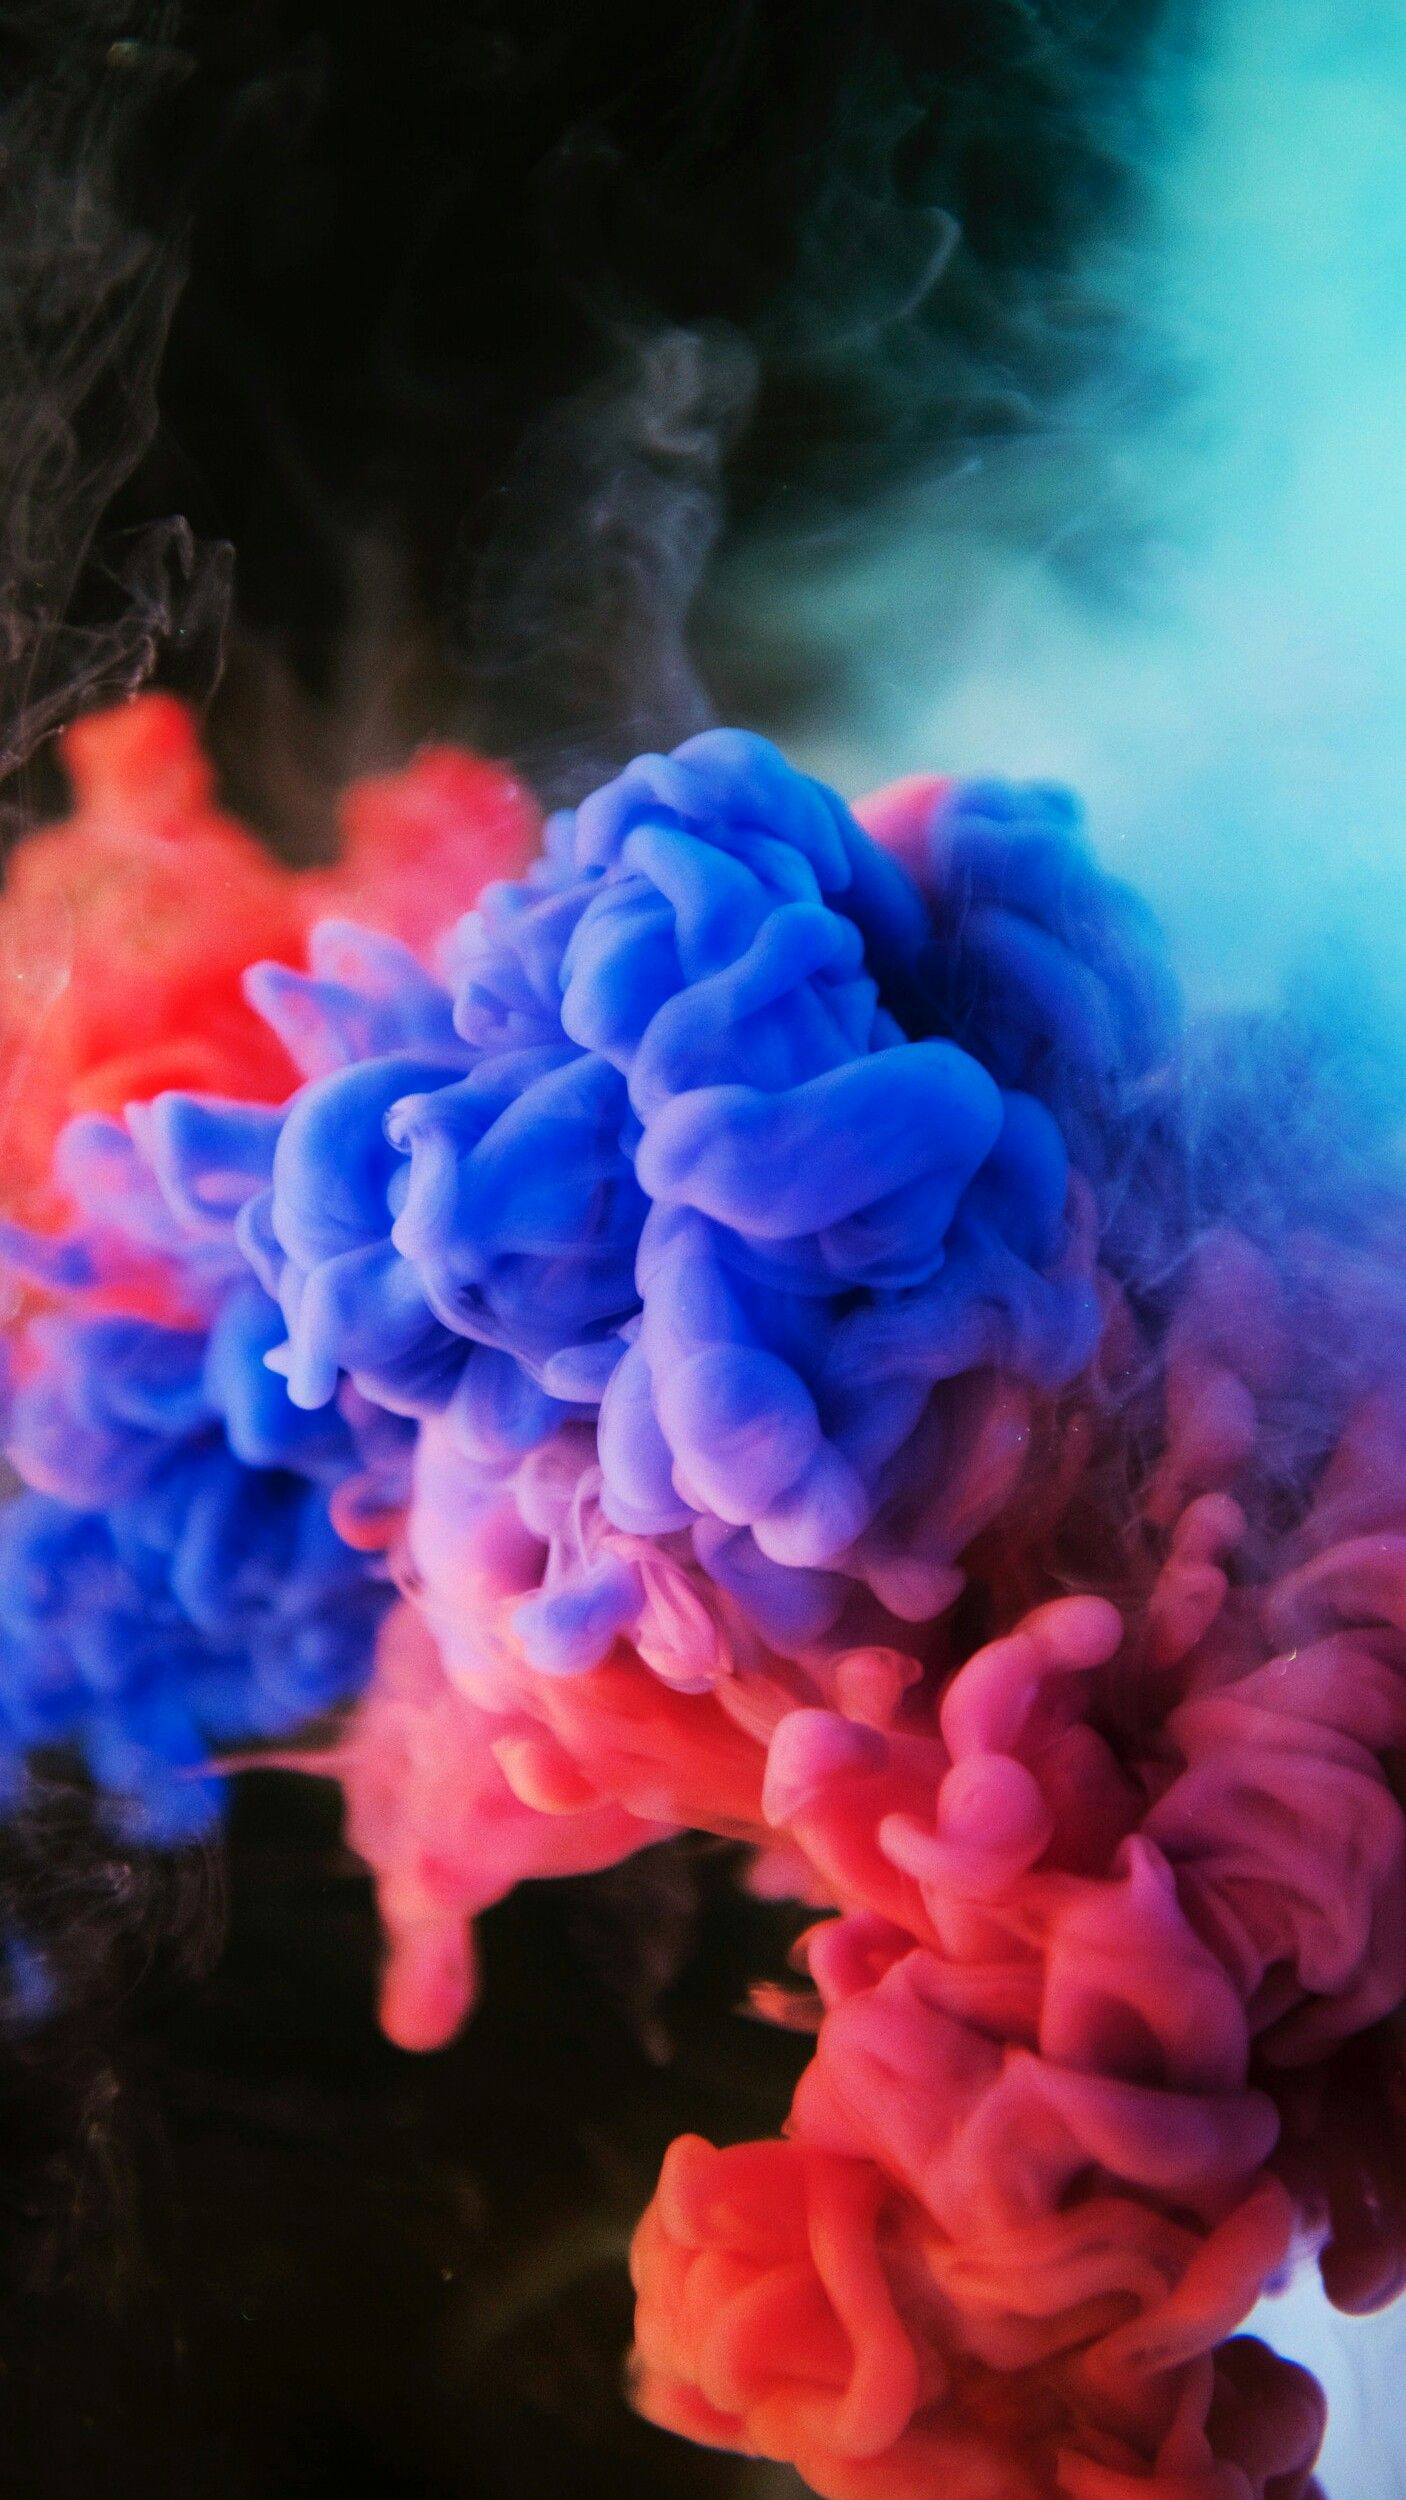 Pin by Iyan Sofyan on Smoke Pictures Colored smoke